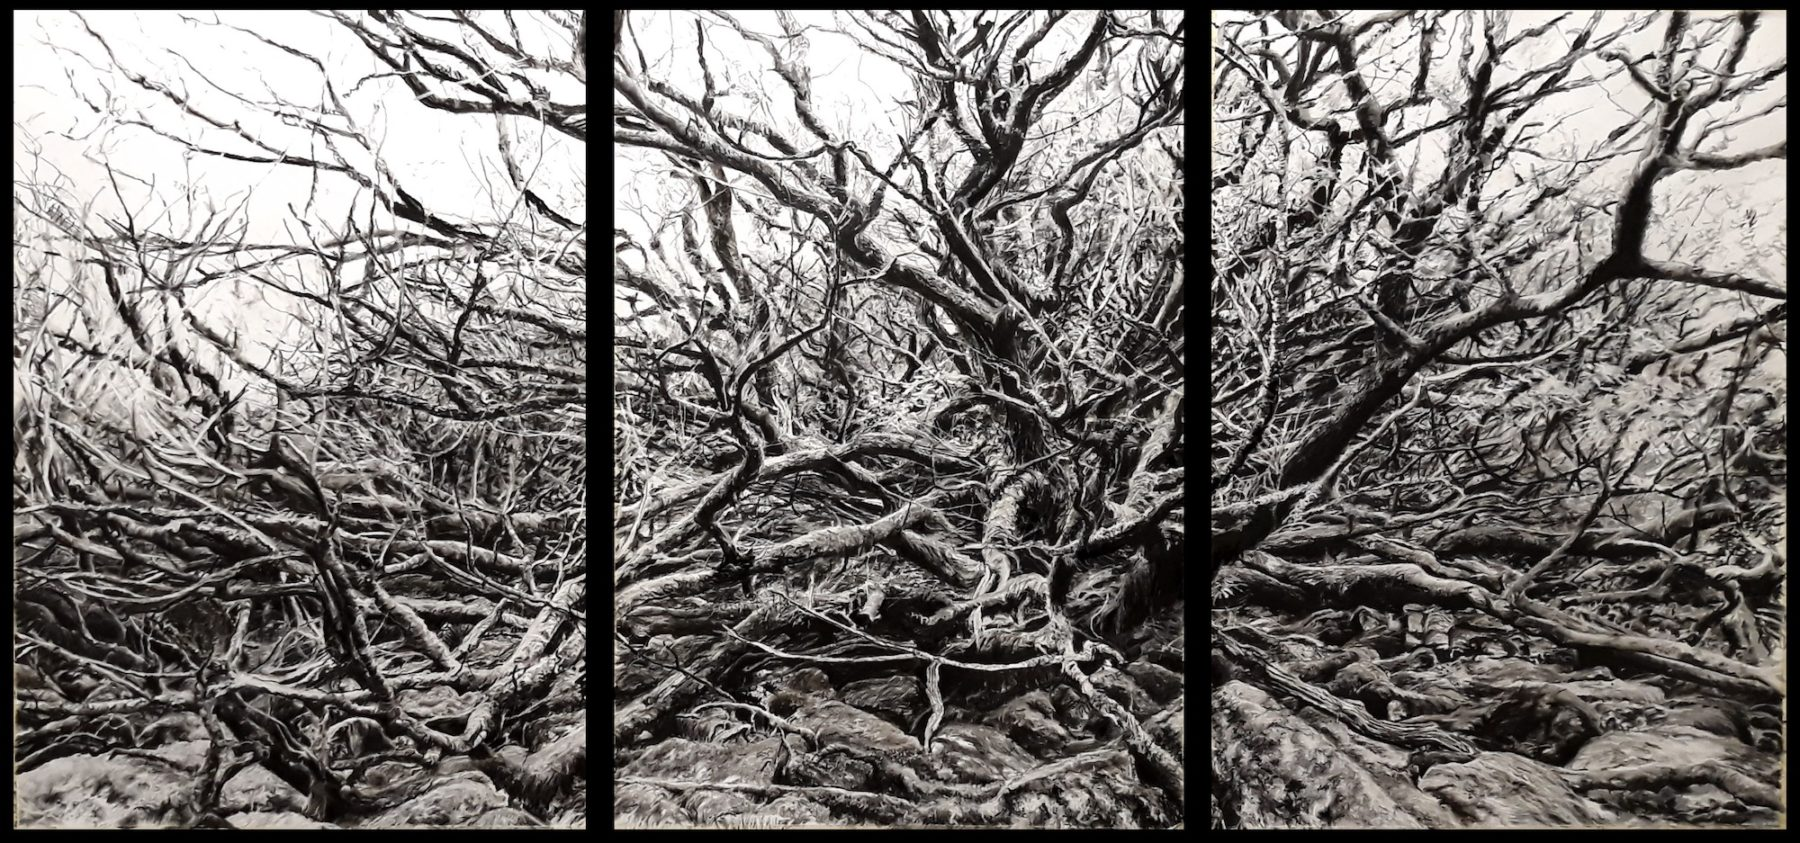 A triptych of images consists of intertwining bare branches in black, white and grey.